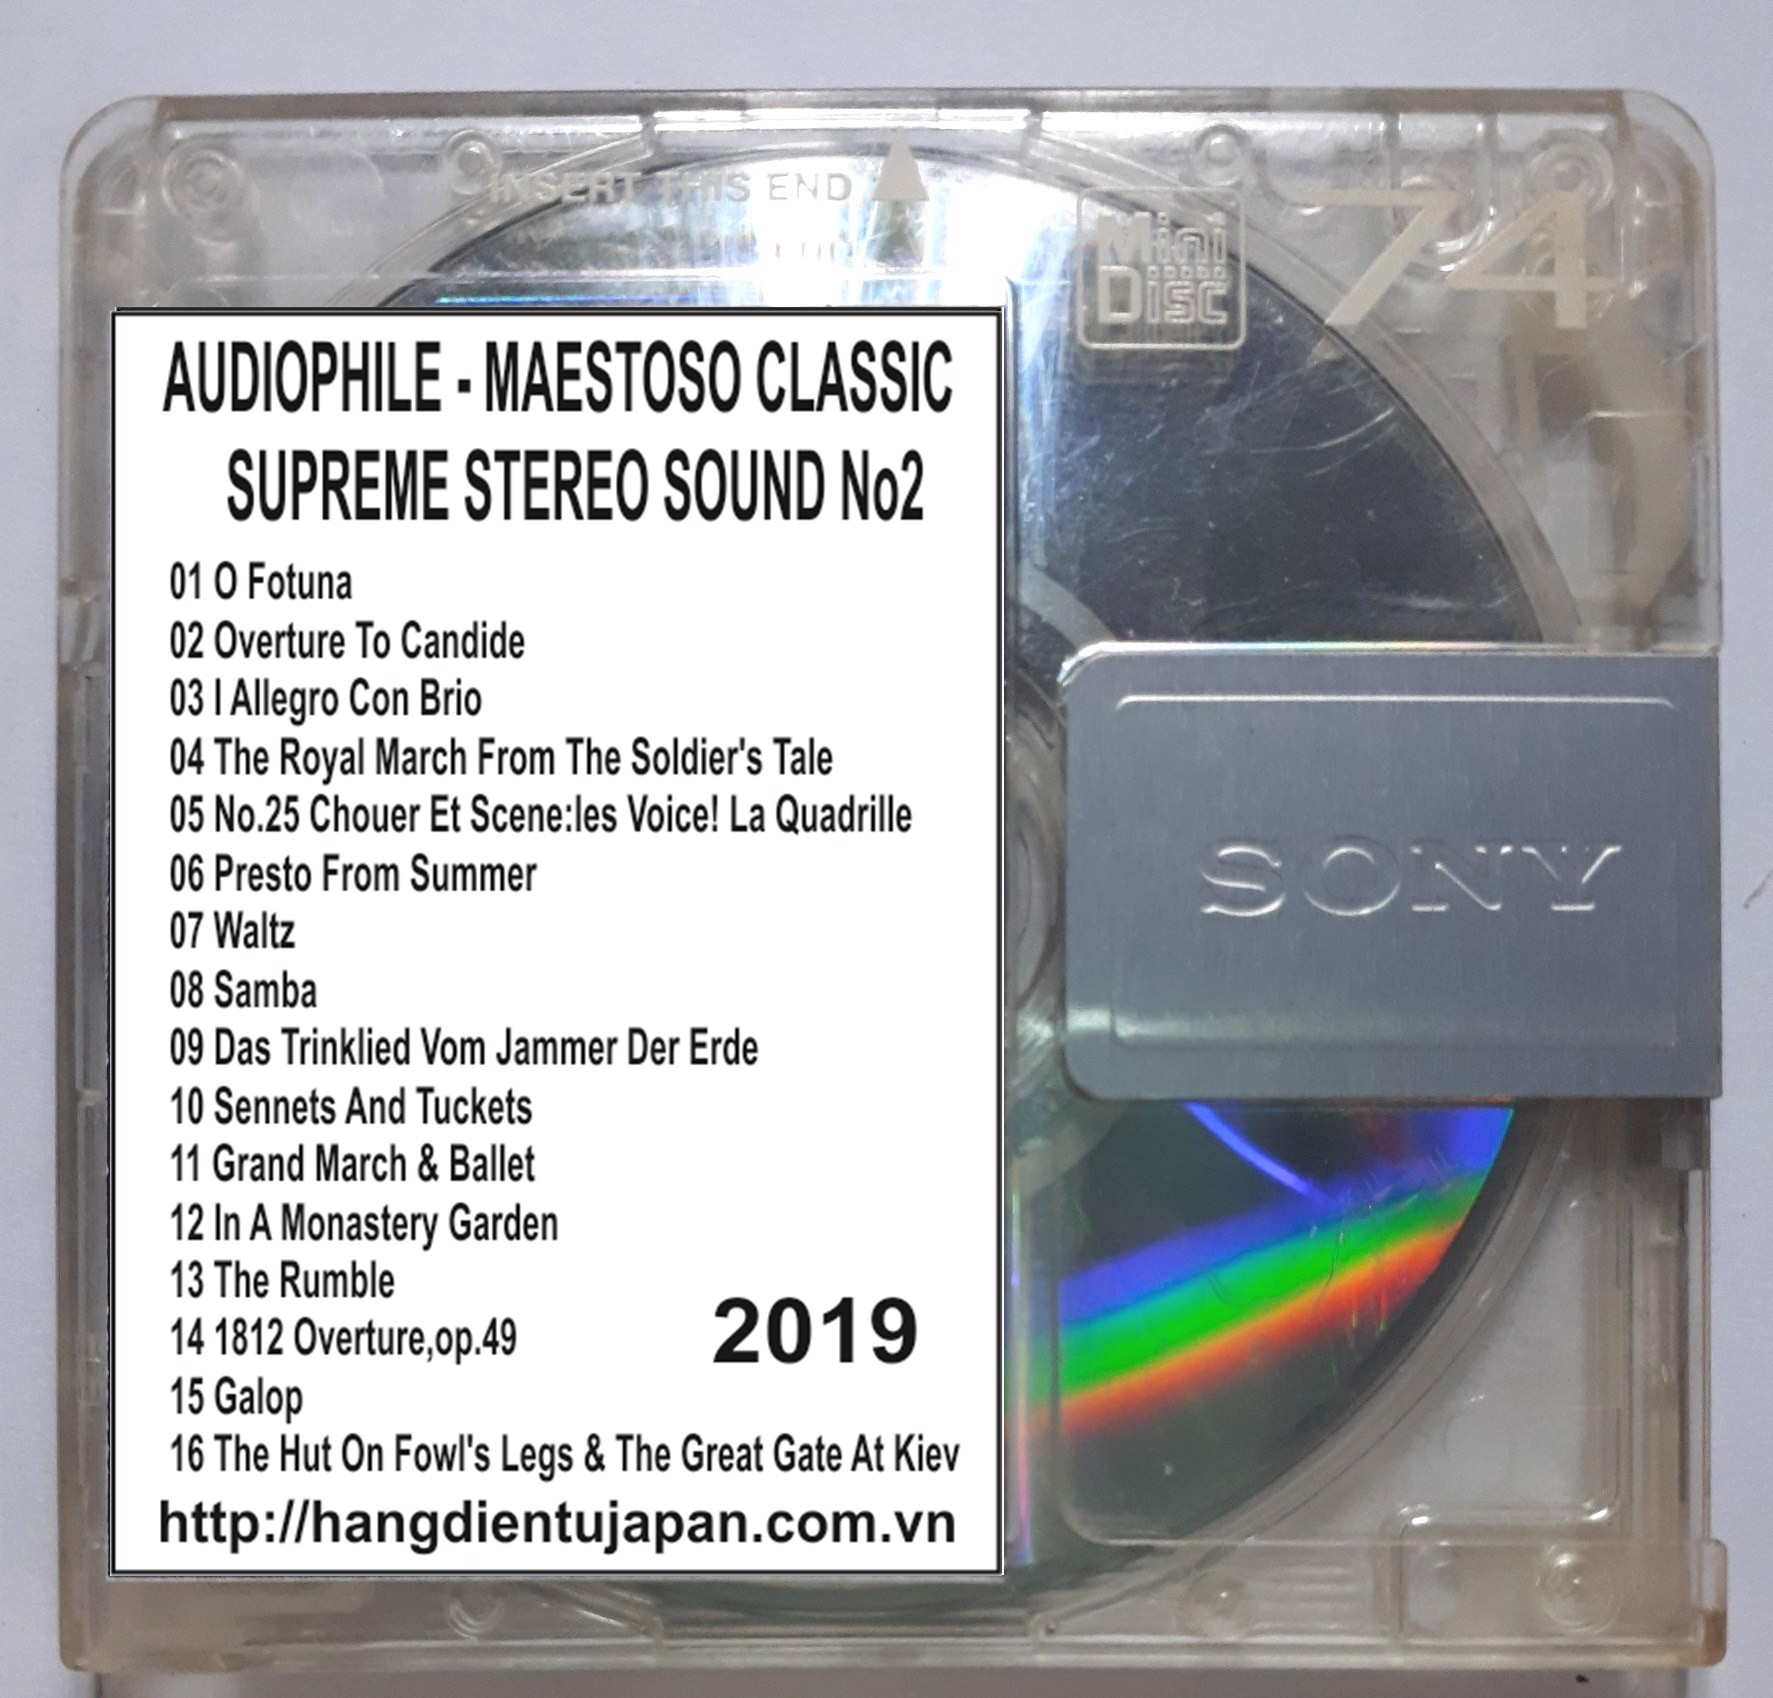 2019. AUDIOPHILE - MAESTOSO CLASSIC - SUPREME STEREO SOUND NO2